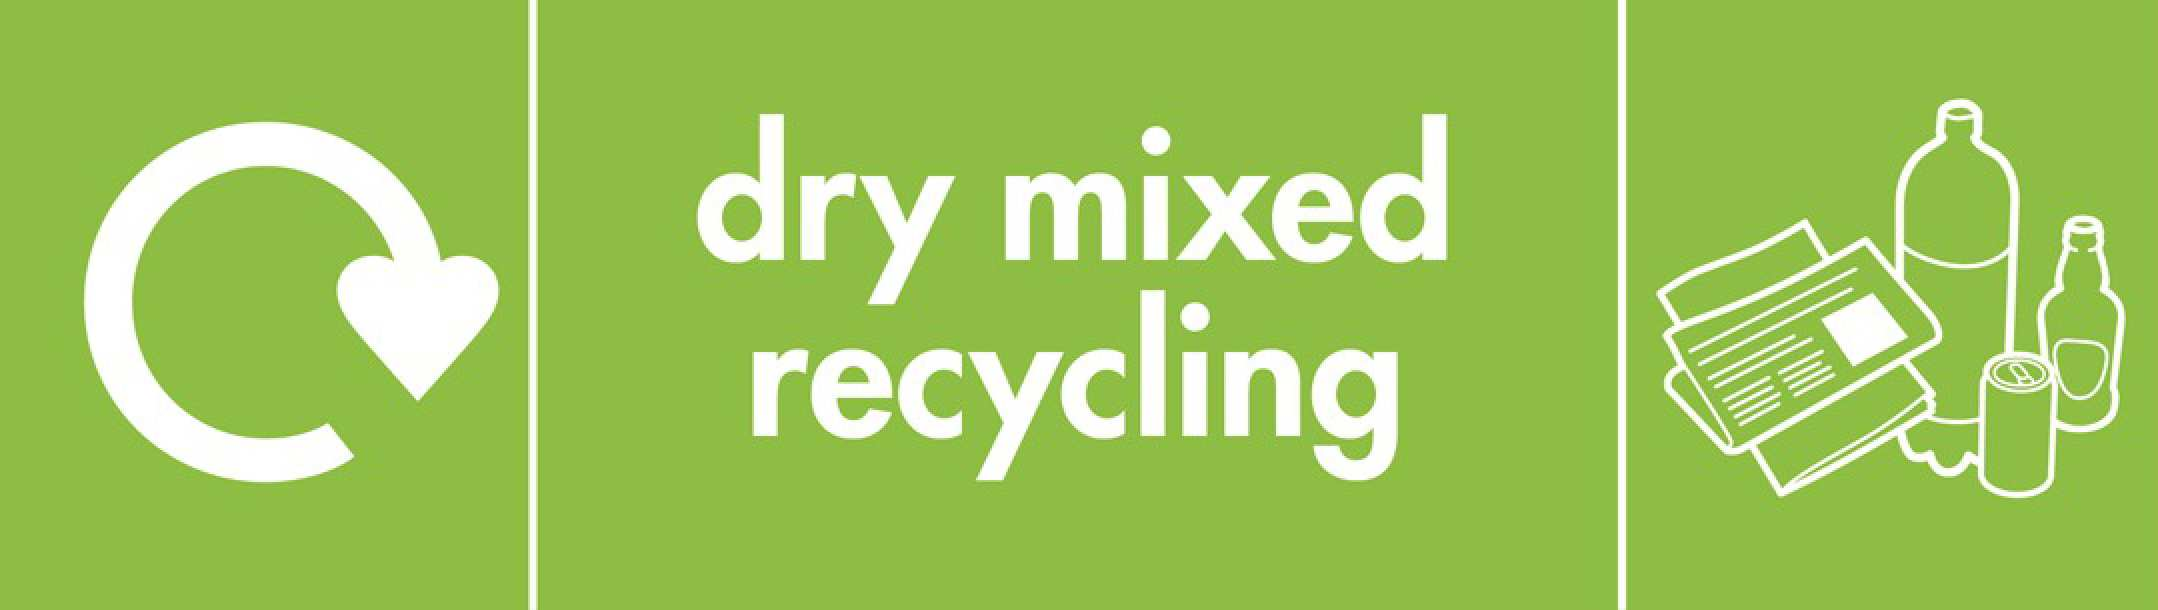 Dry Mixed Recycling Administration And Support Services